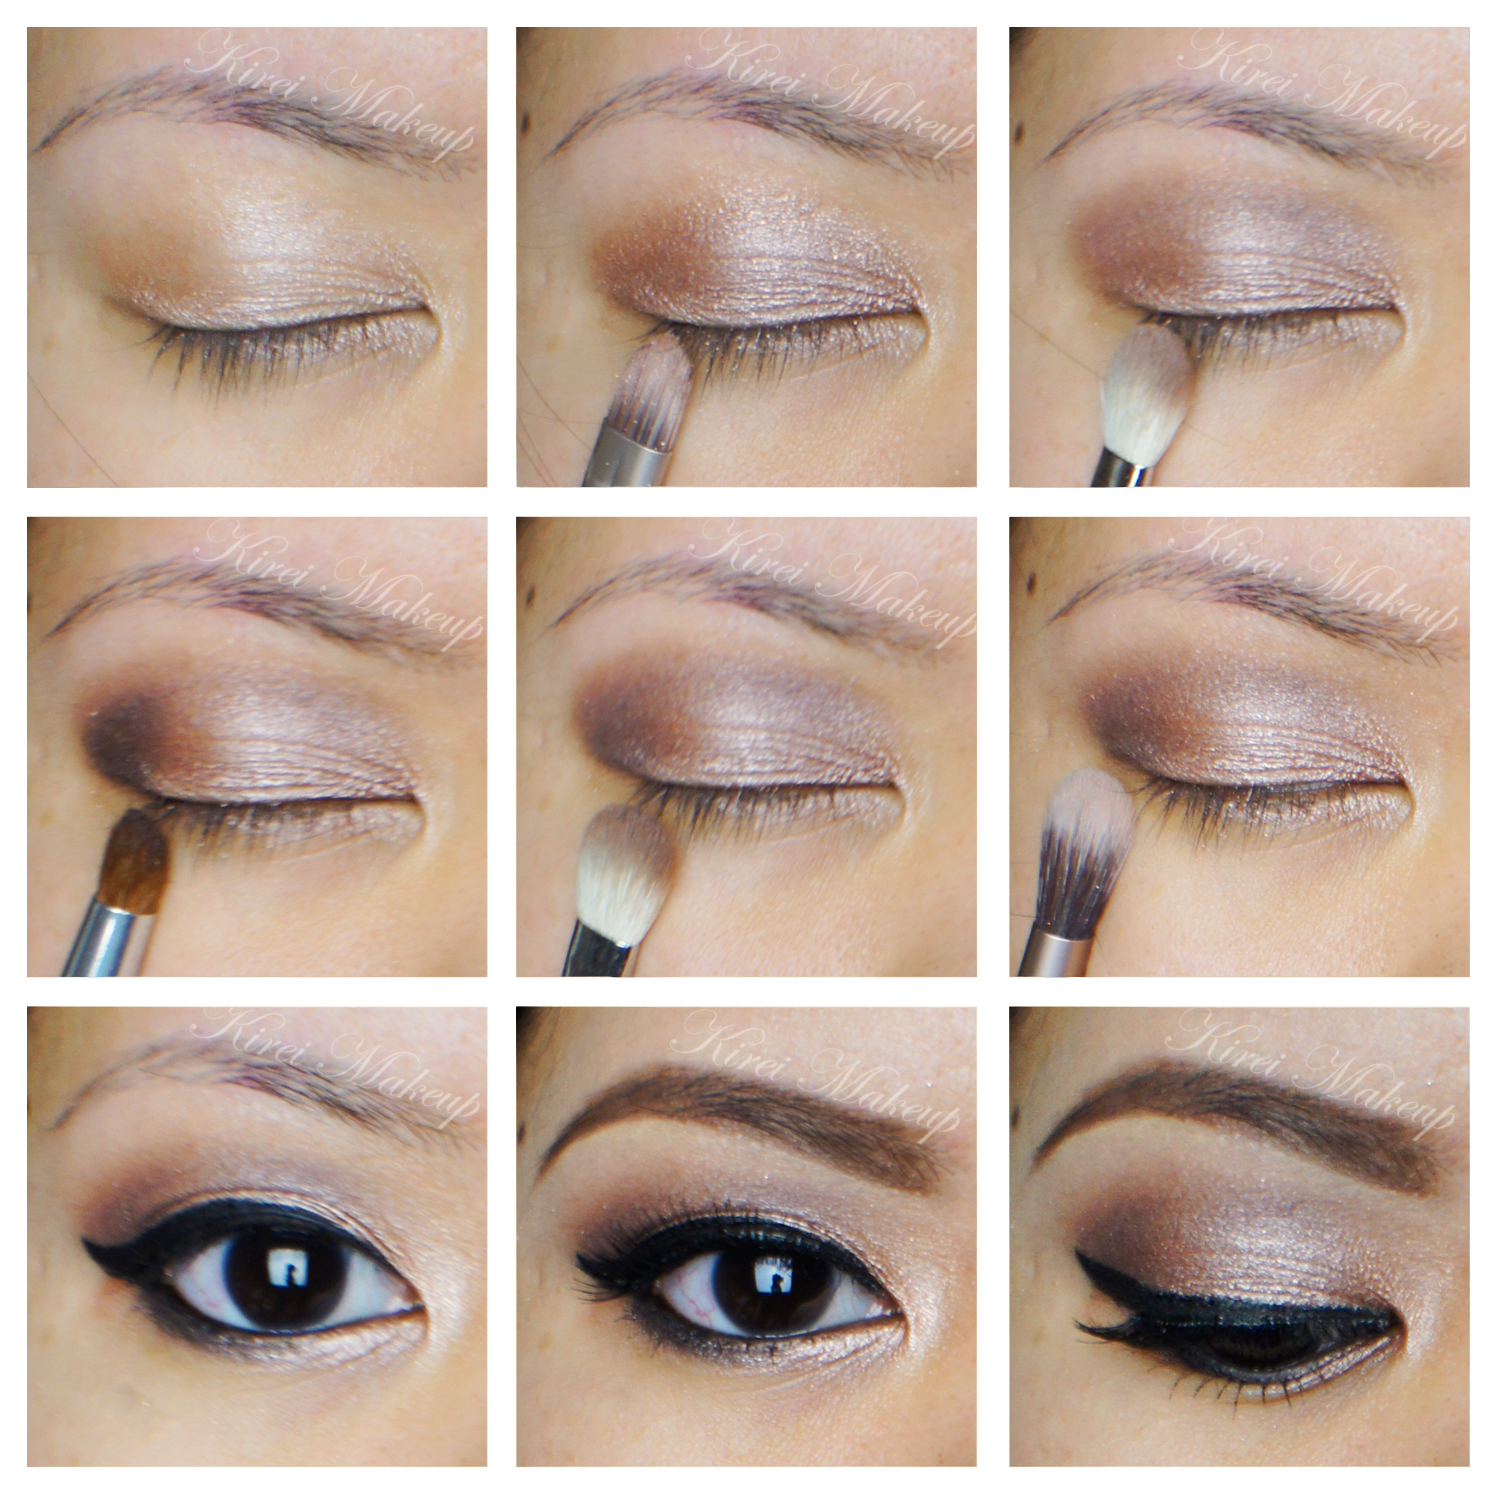 11 fabulous asian eye makeup tutorials and tricks you need to try.